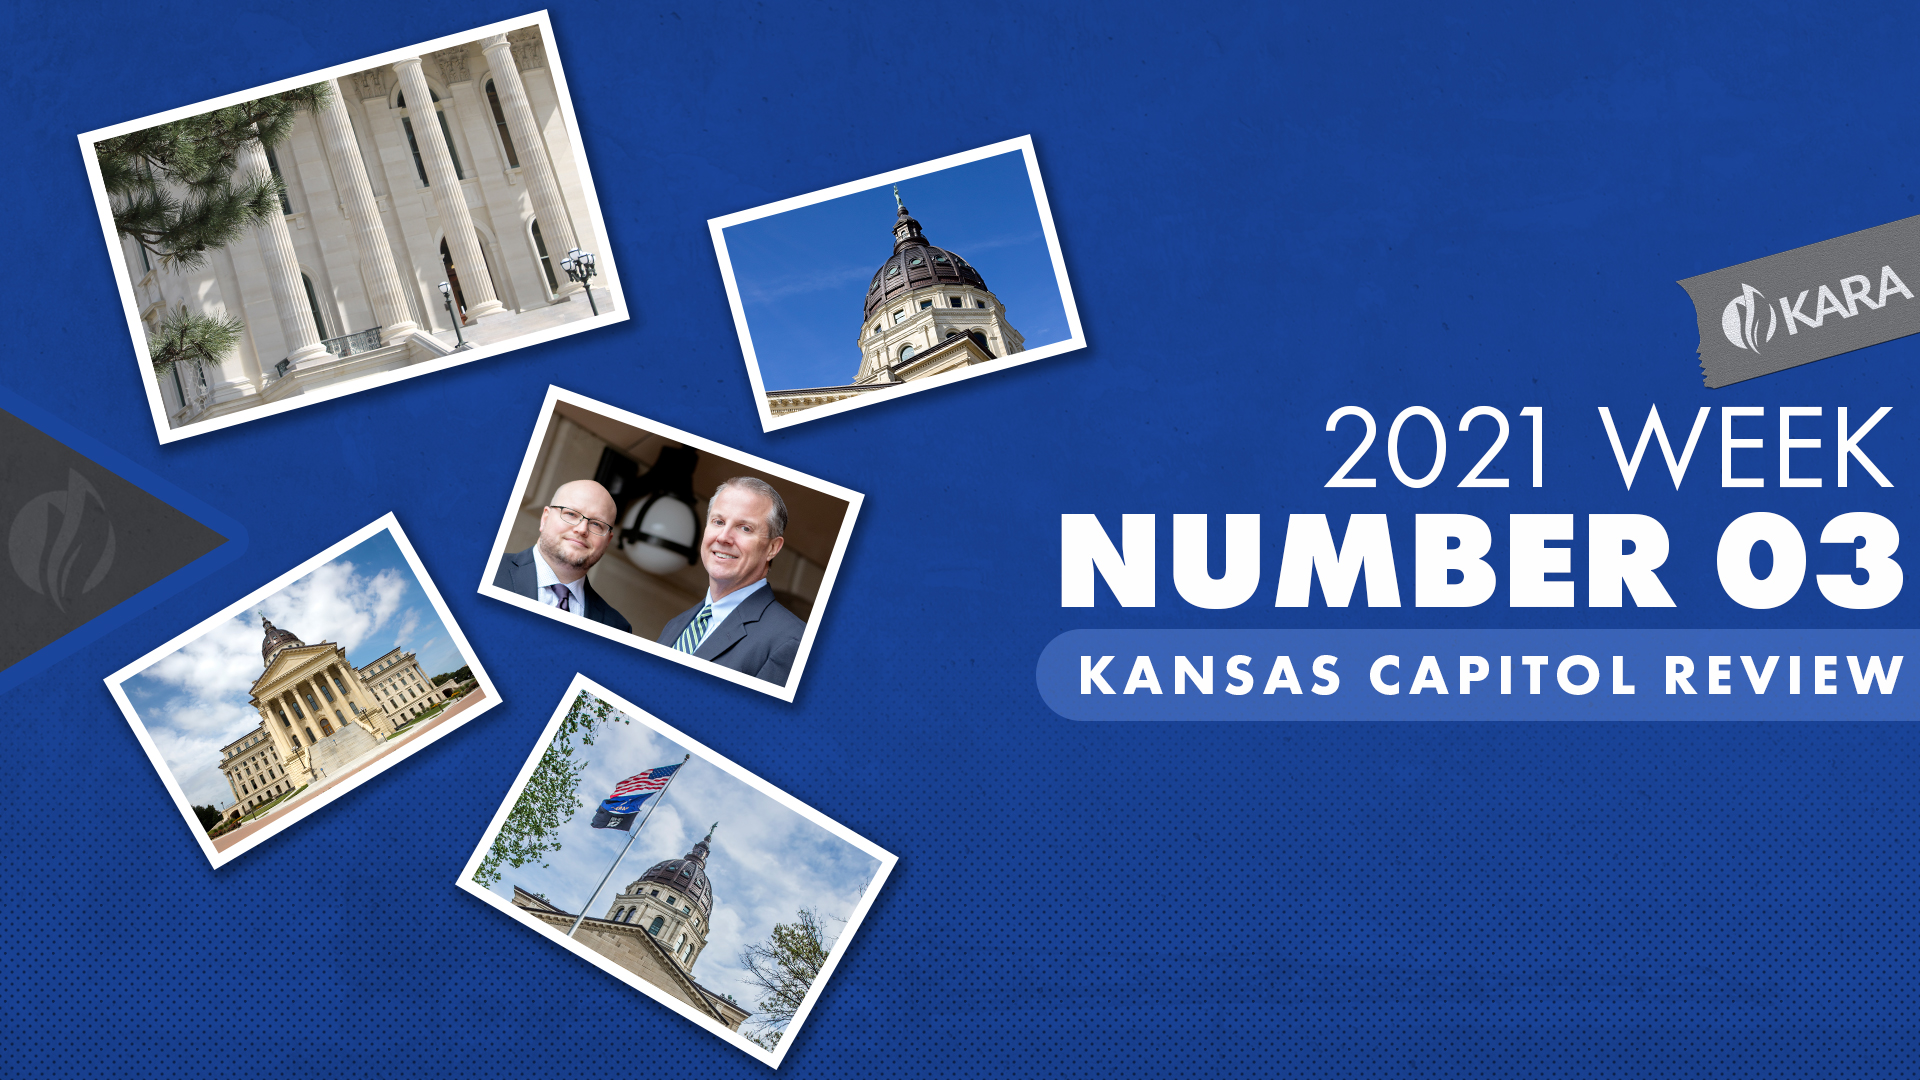 Kansas Capitol Review - Week 03